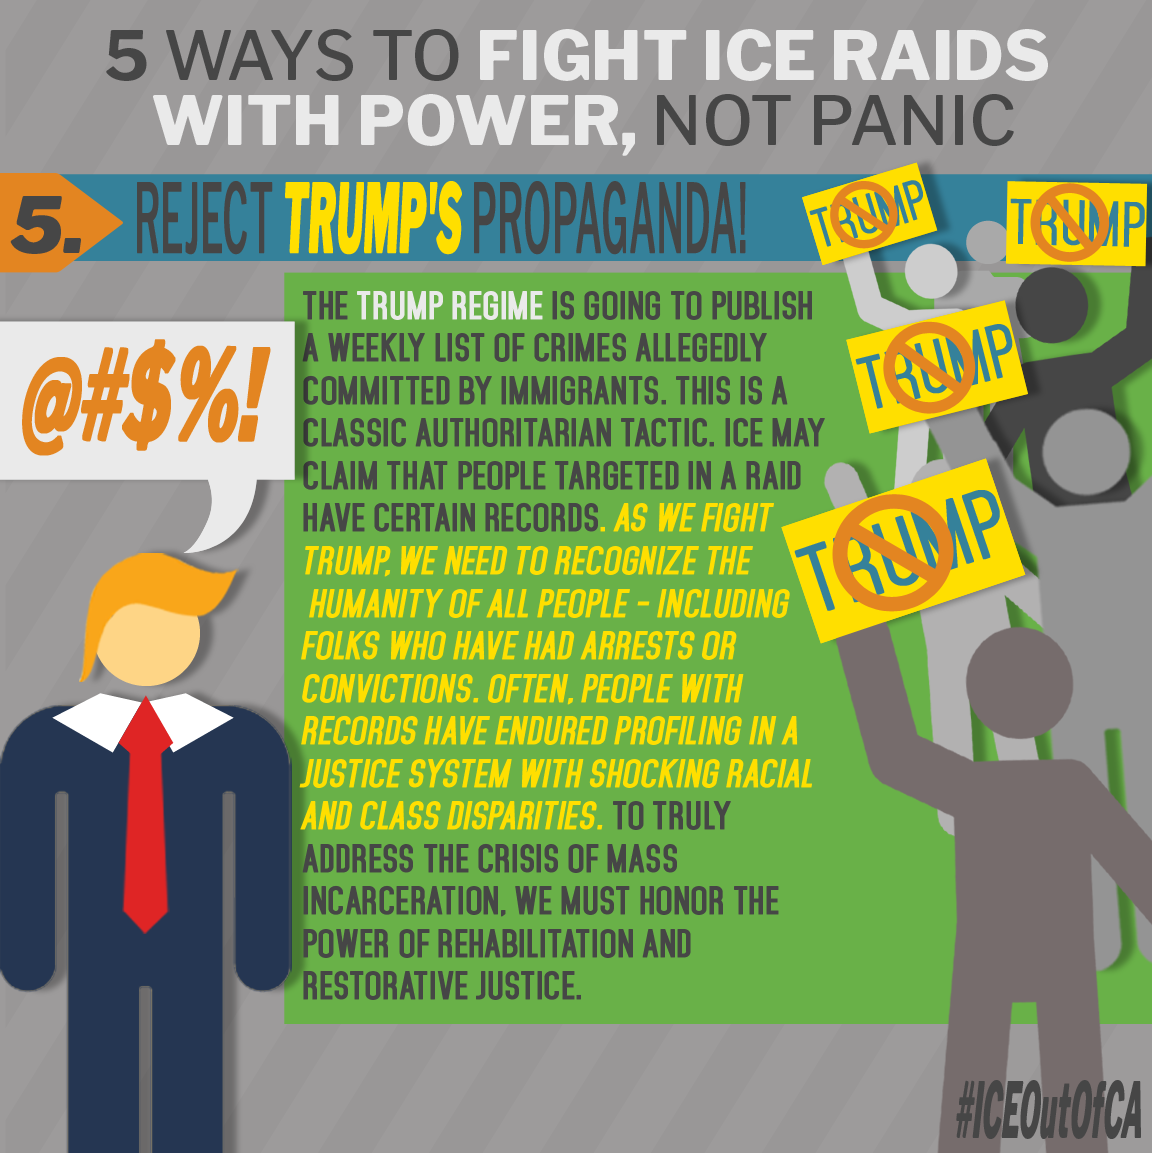 Fight ICE Raids with Power 5